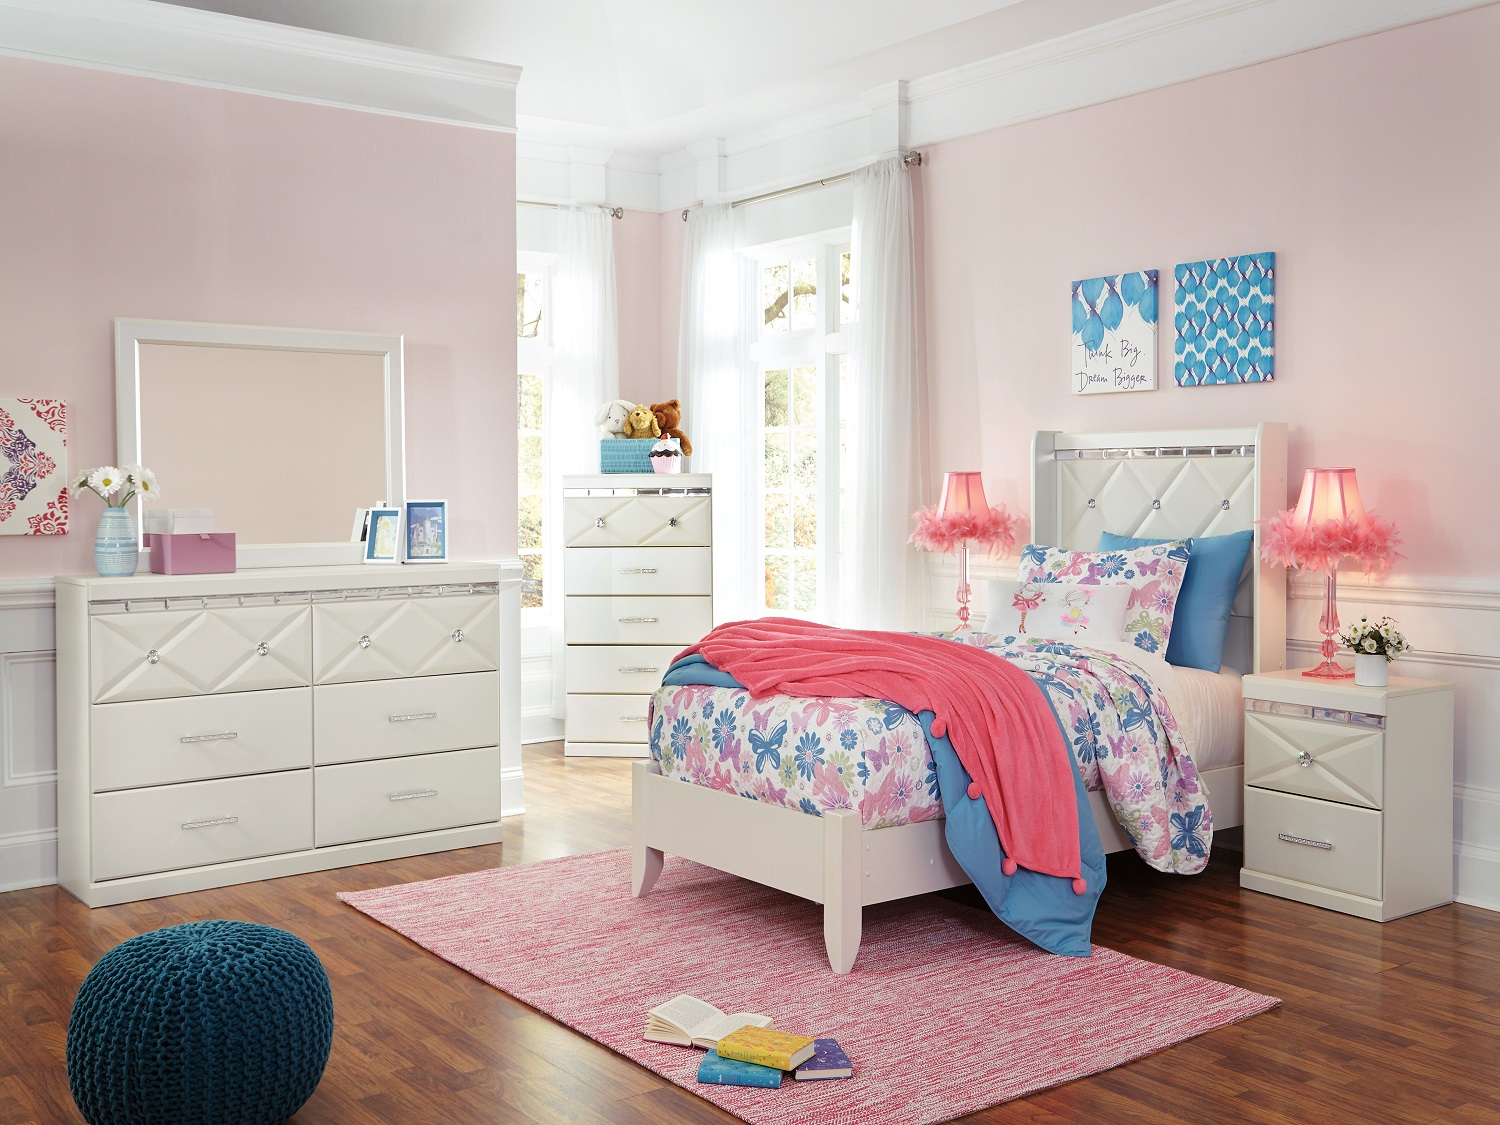 Dreamur bed, B351, Kids Bedroom Sets, Dreamur bed from Ashley by Midha Furniture serving Brampton, Mississauga, Etobicoke, Toronto, Scraborough, Caledon, Cambridge, Oakville, Markham, Ajax, Pickering, Oshawa, Richmondhill, Kitchener, Hamilton, Cambridge, Waterloo and GTA area